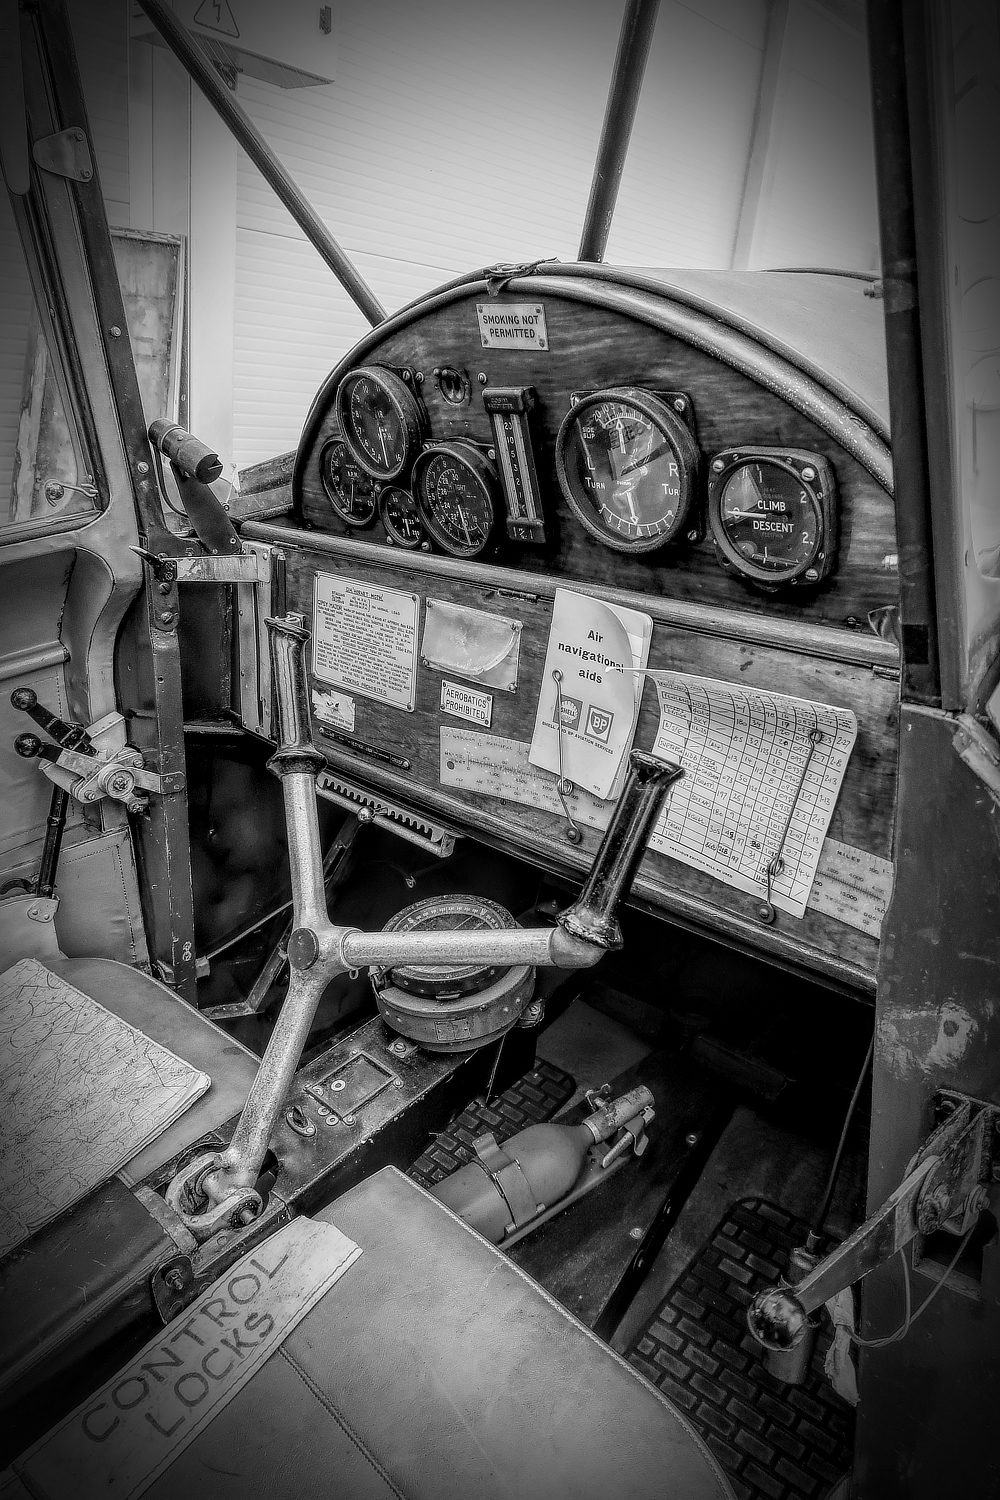 De Havilland Hornet Moth cockpit